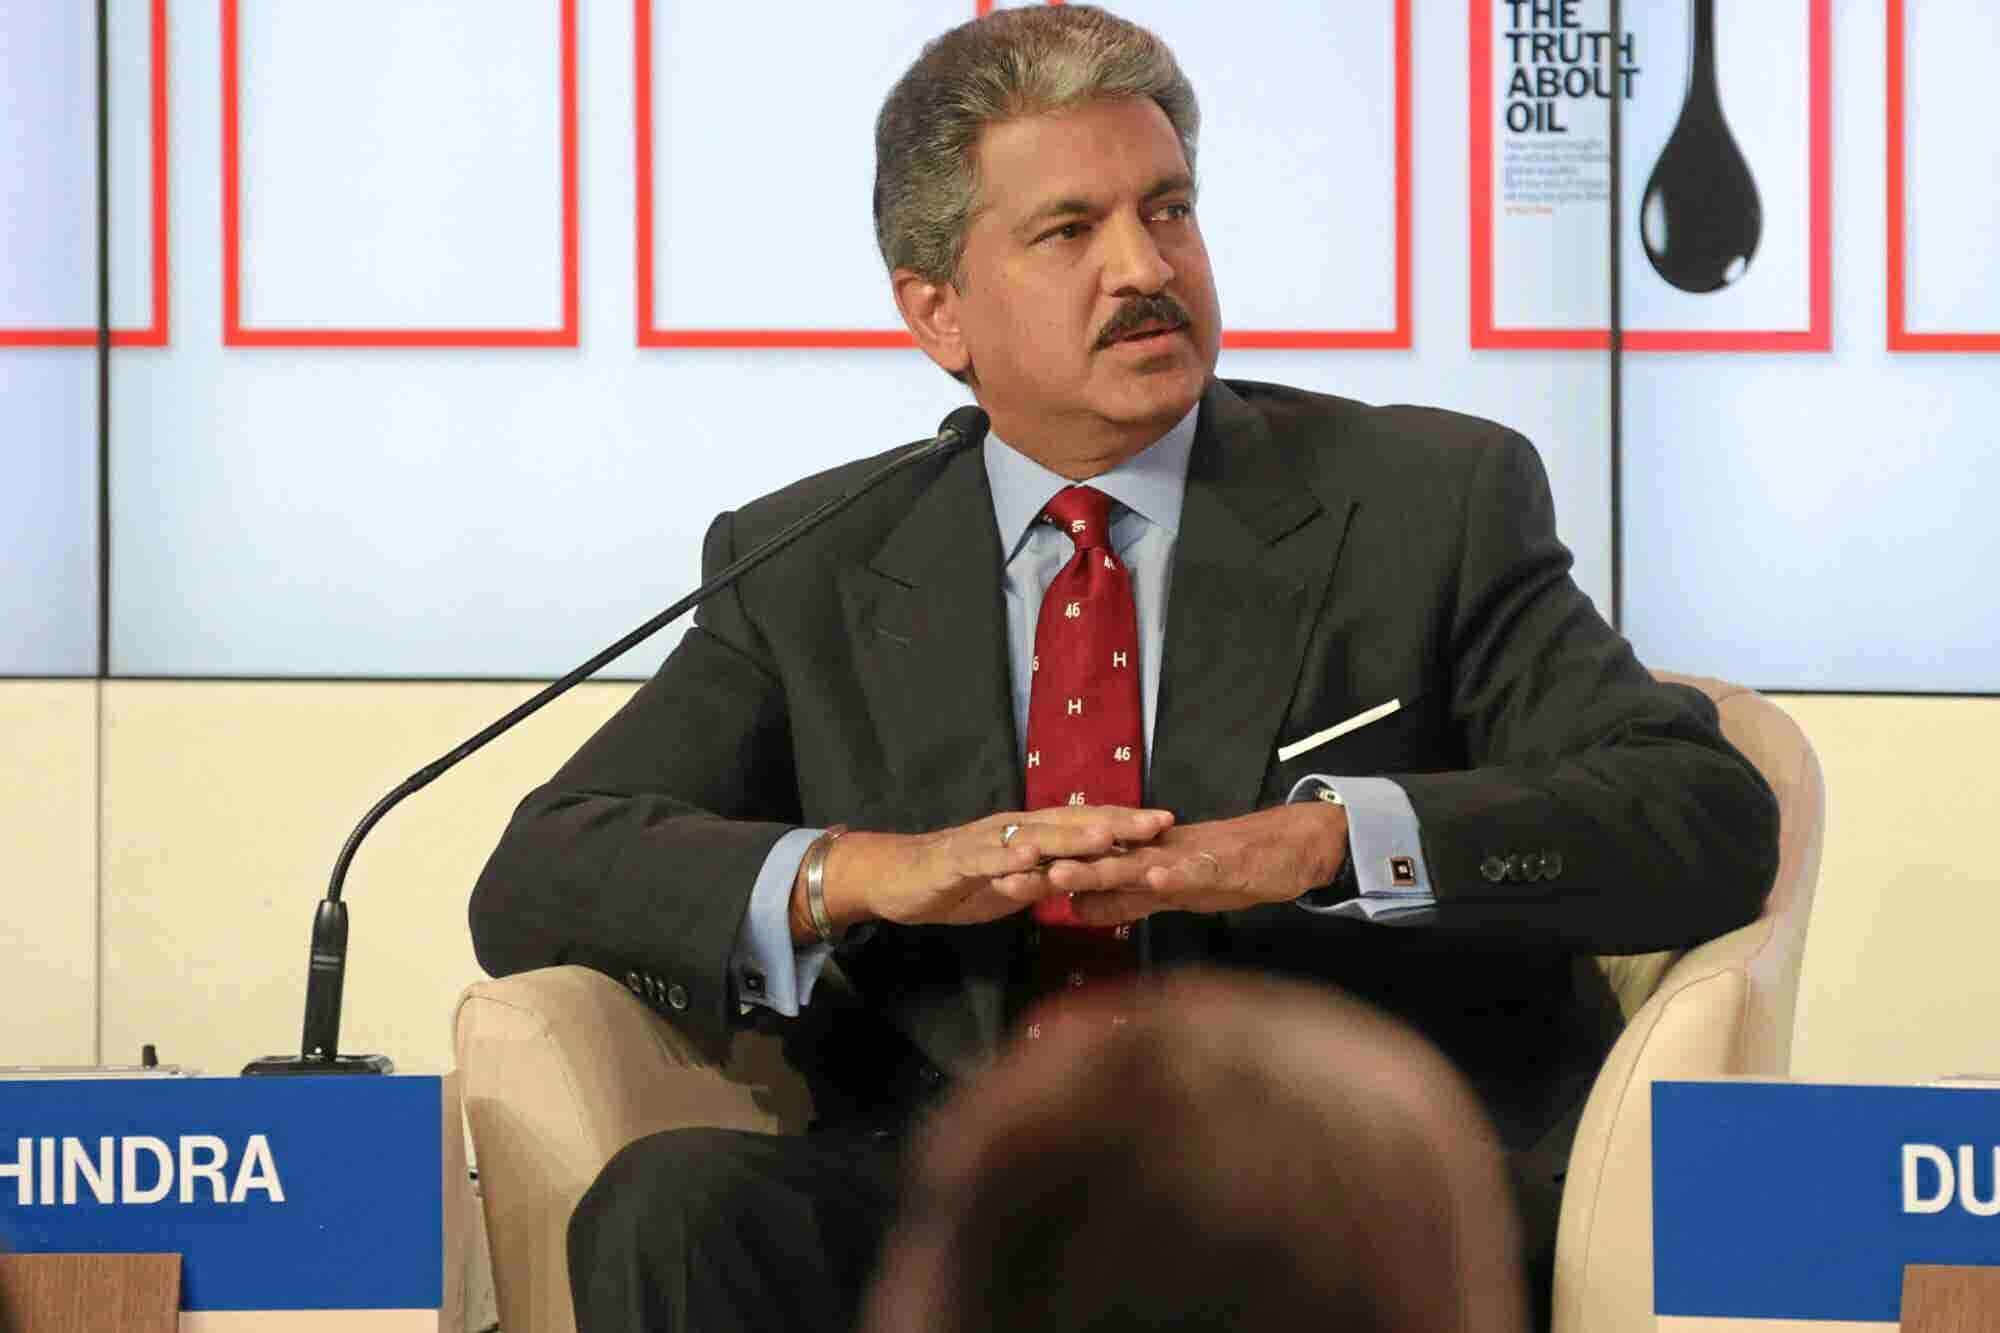 Amway in Court Battle With Flipkart & Anand Mahindra's Garba Love